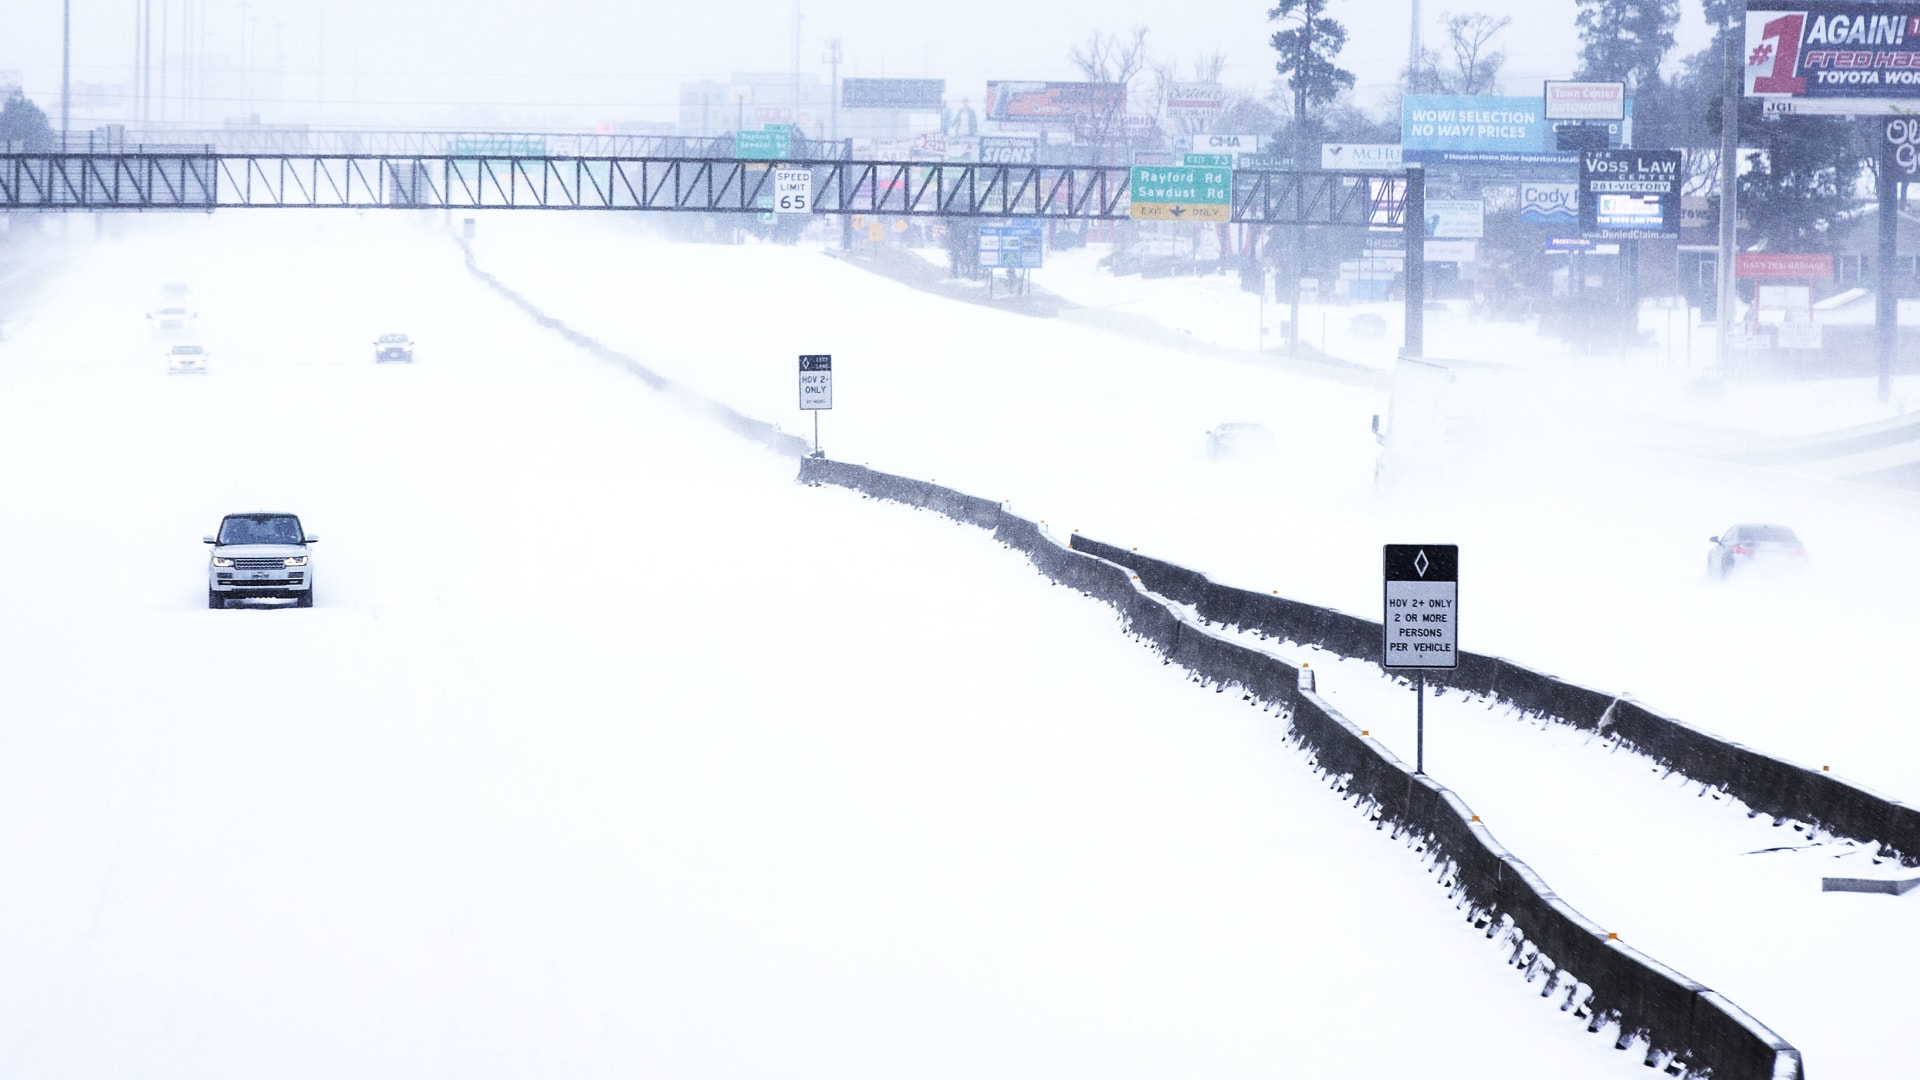 Traffic is sparse on the snow-covered I-45 near The Woodlands Parkway following an overnight snowfall Monday, Feb. 15, 2021 in The Woodlands, Texas.